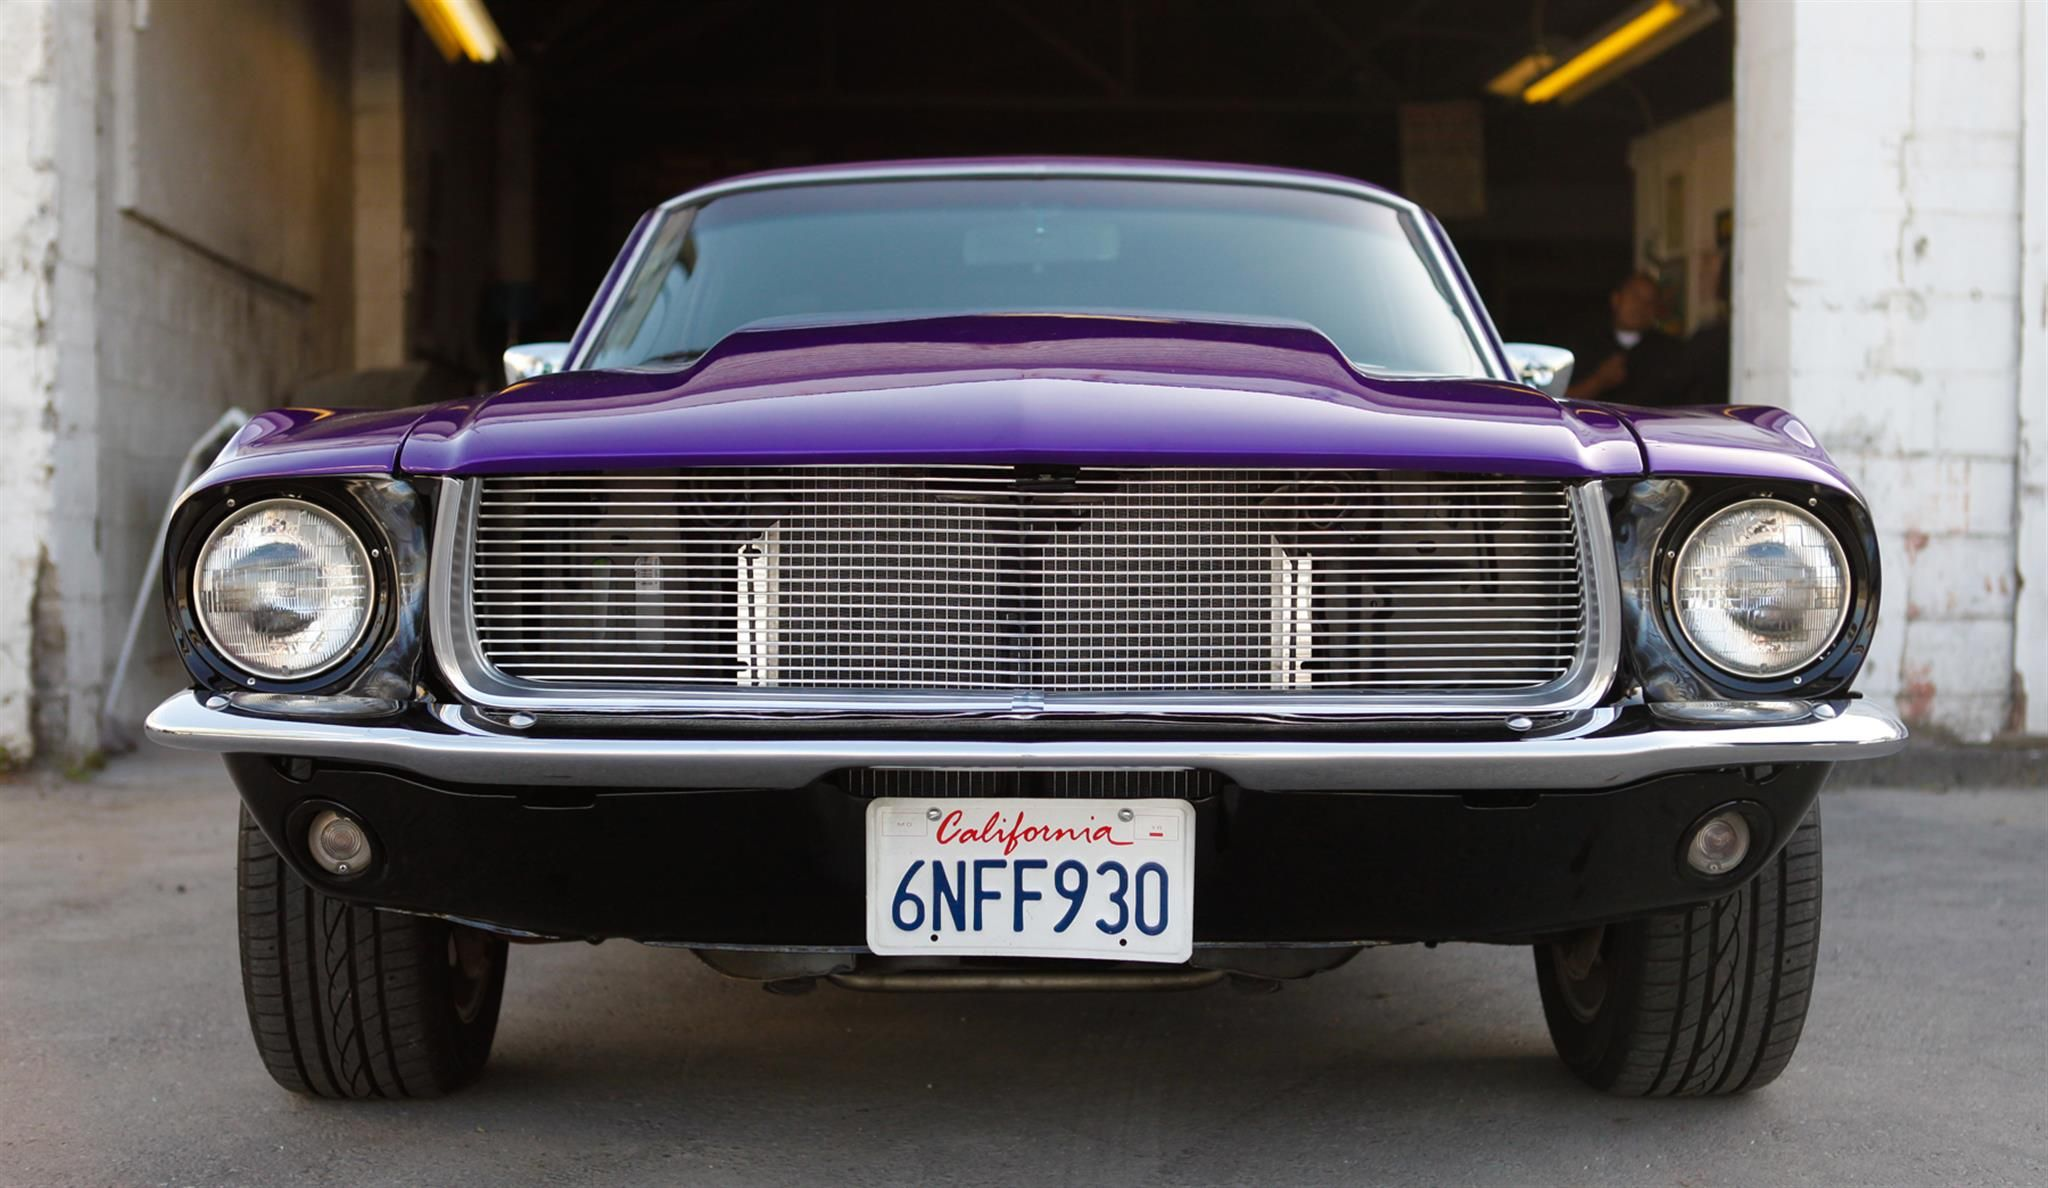 The Purple Mustang By Kjs Auto Body In Oakland Ca Click To View More Photos And Mod Info Purple Mustang Mustang Custom Cars